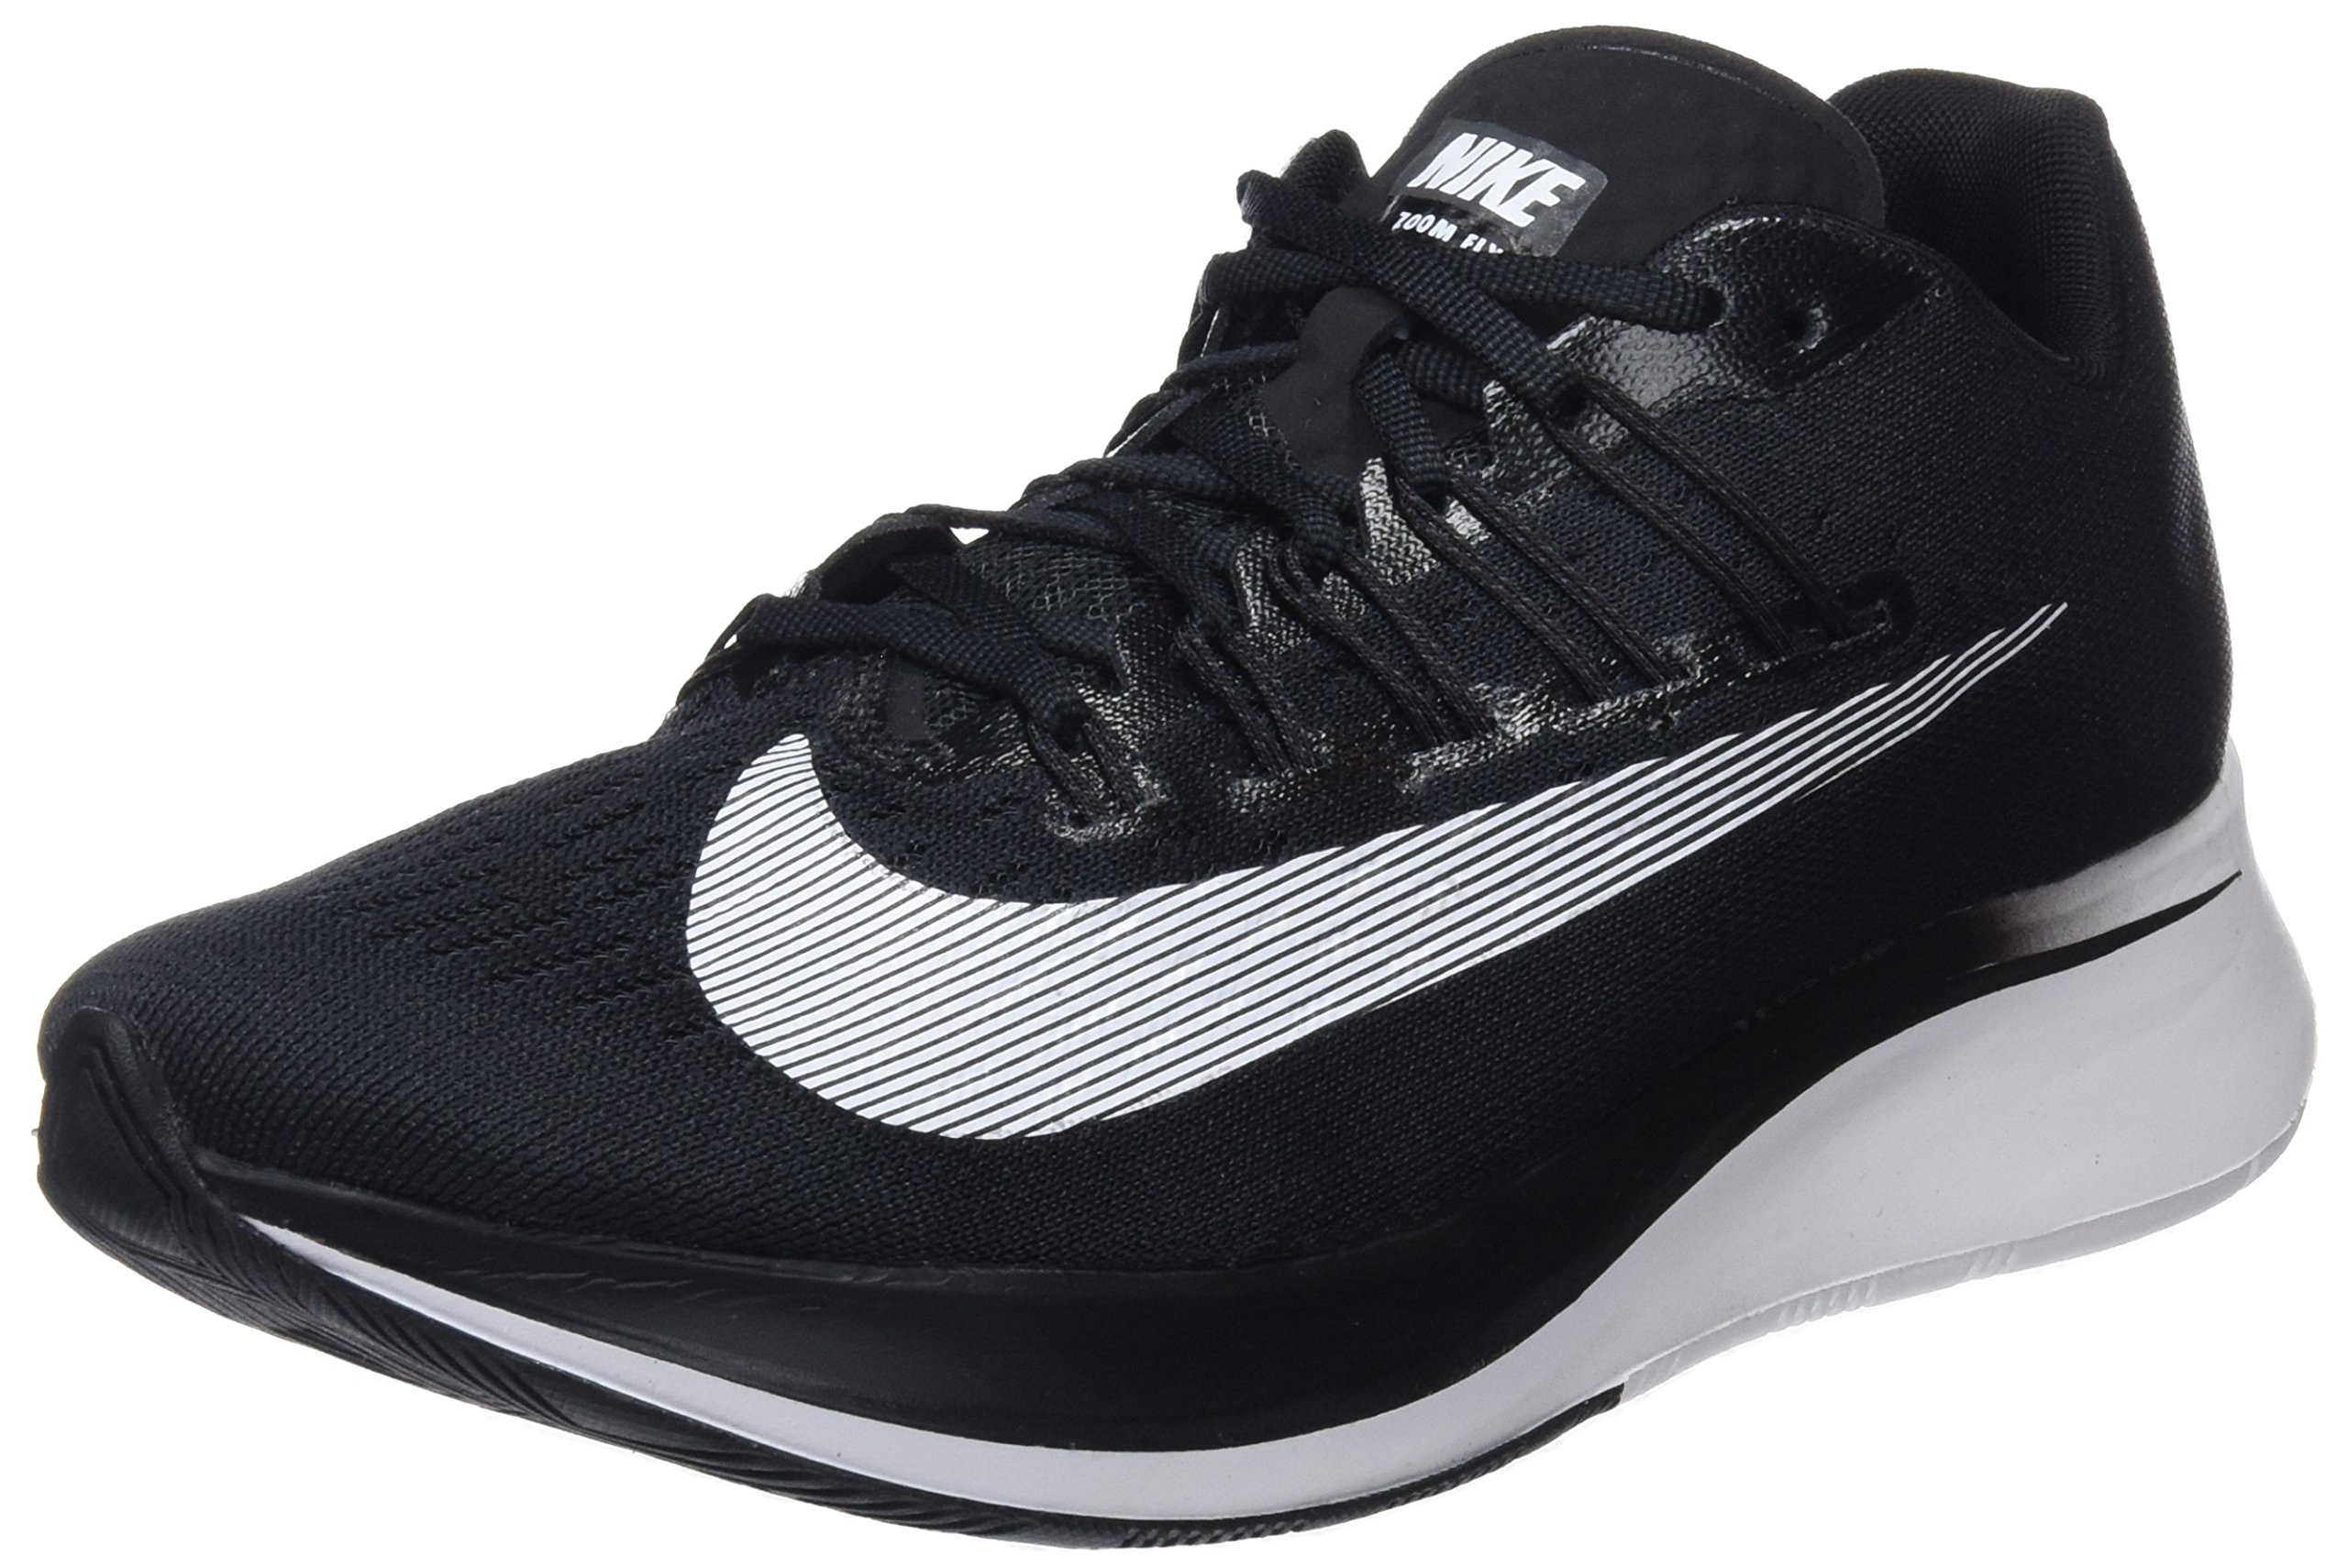 NIKE Women's WMNS Zoom Fly, Black/White, 9 M US by NIKE (Image #1)